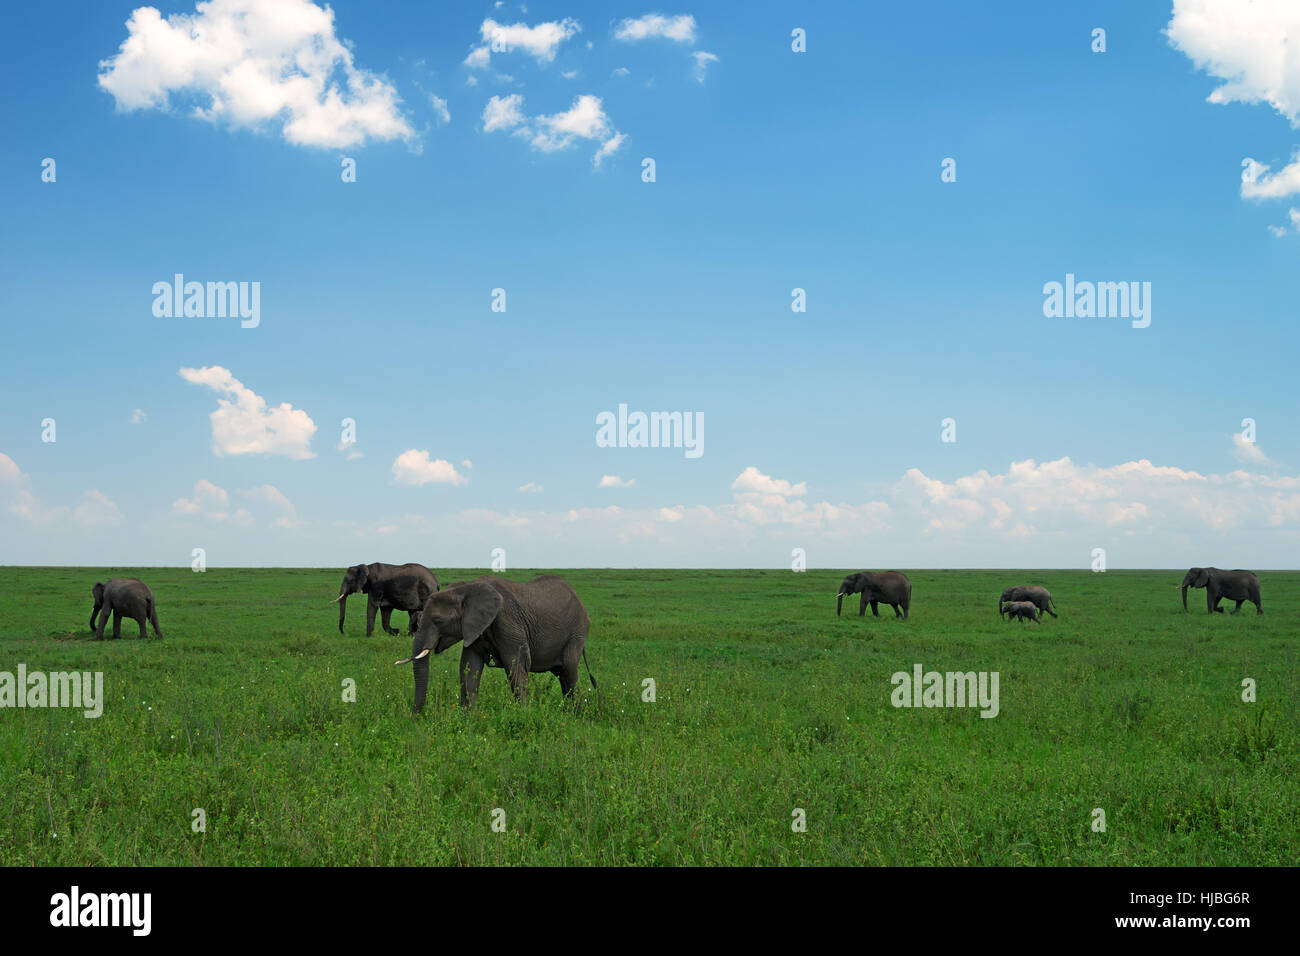 Group of African elephants in savanna - Stock Image